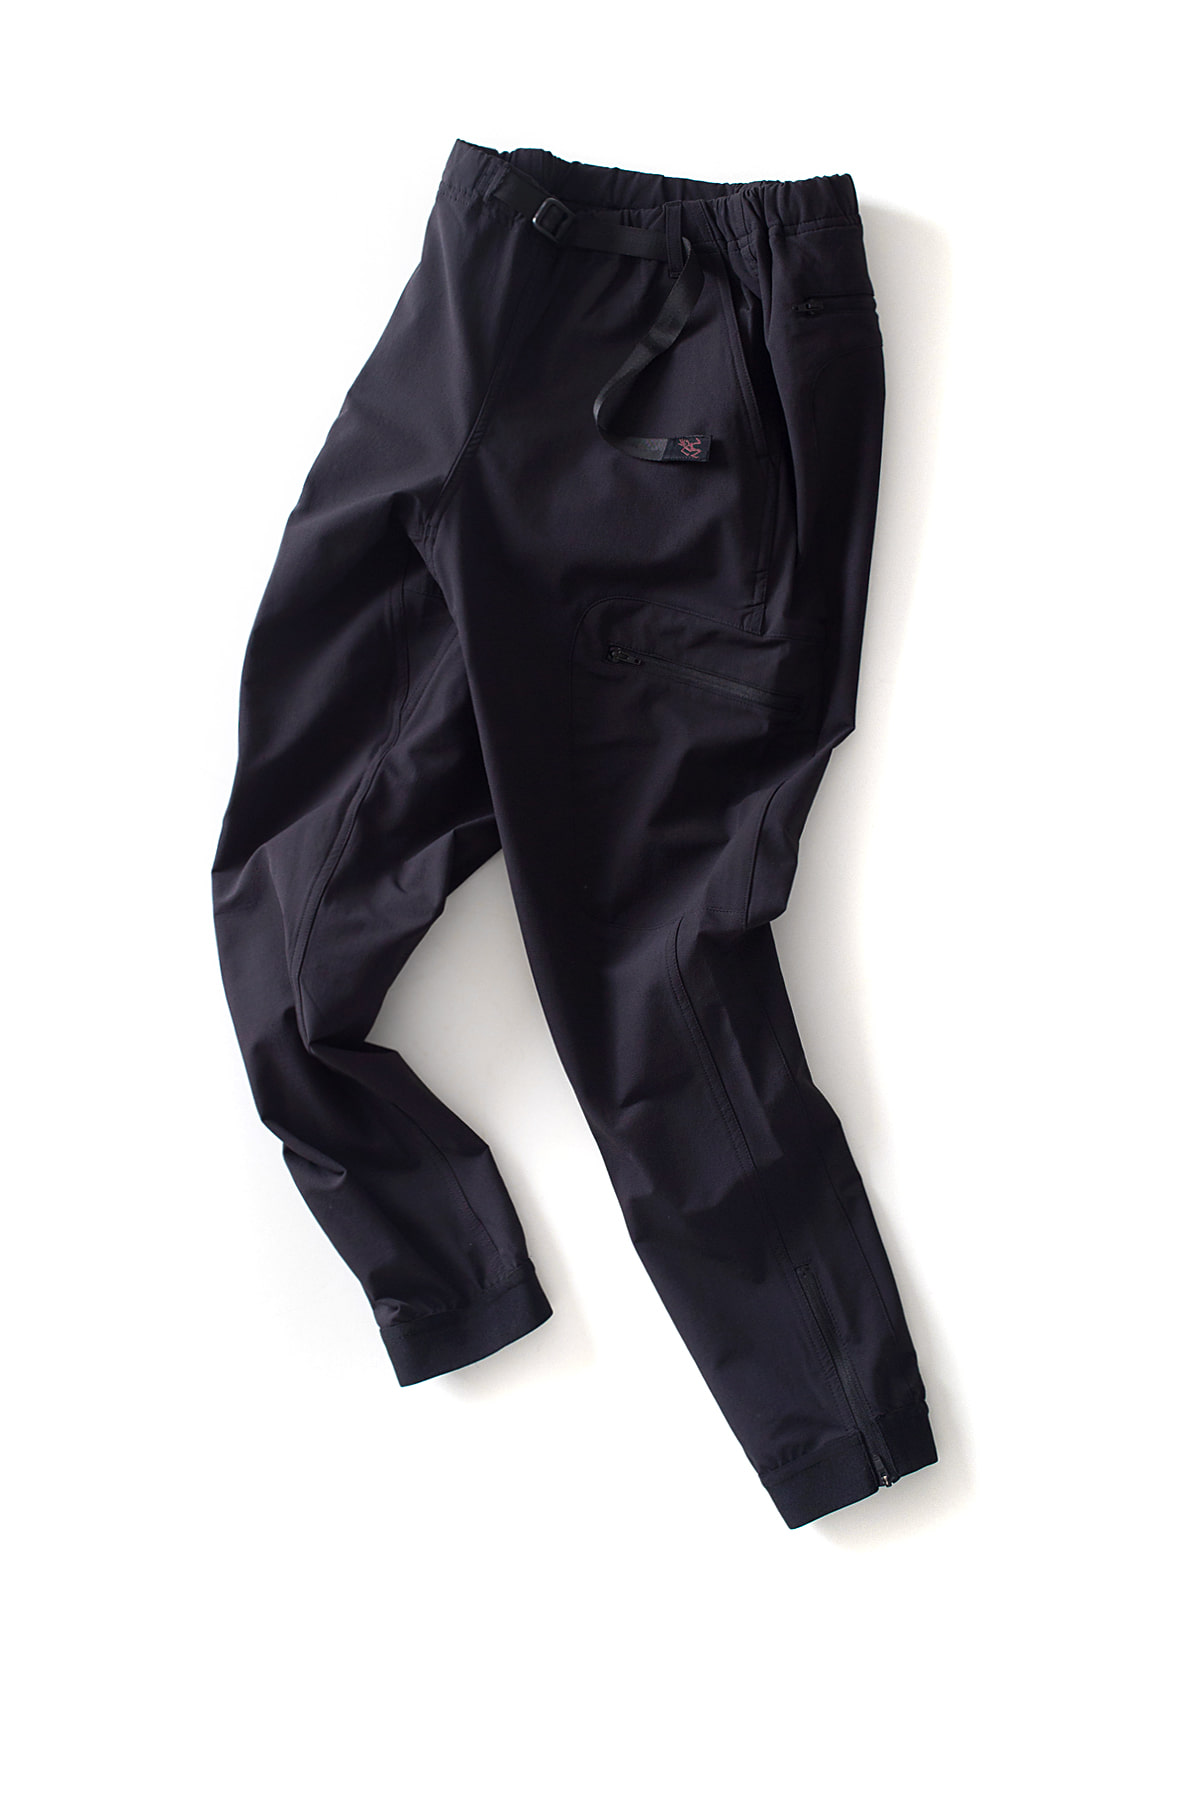 Gramicci : 4Way st Narrow Rib Gear Pants (Black)